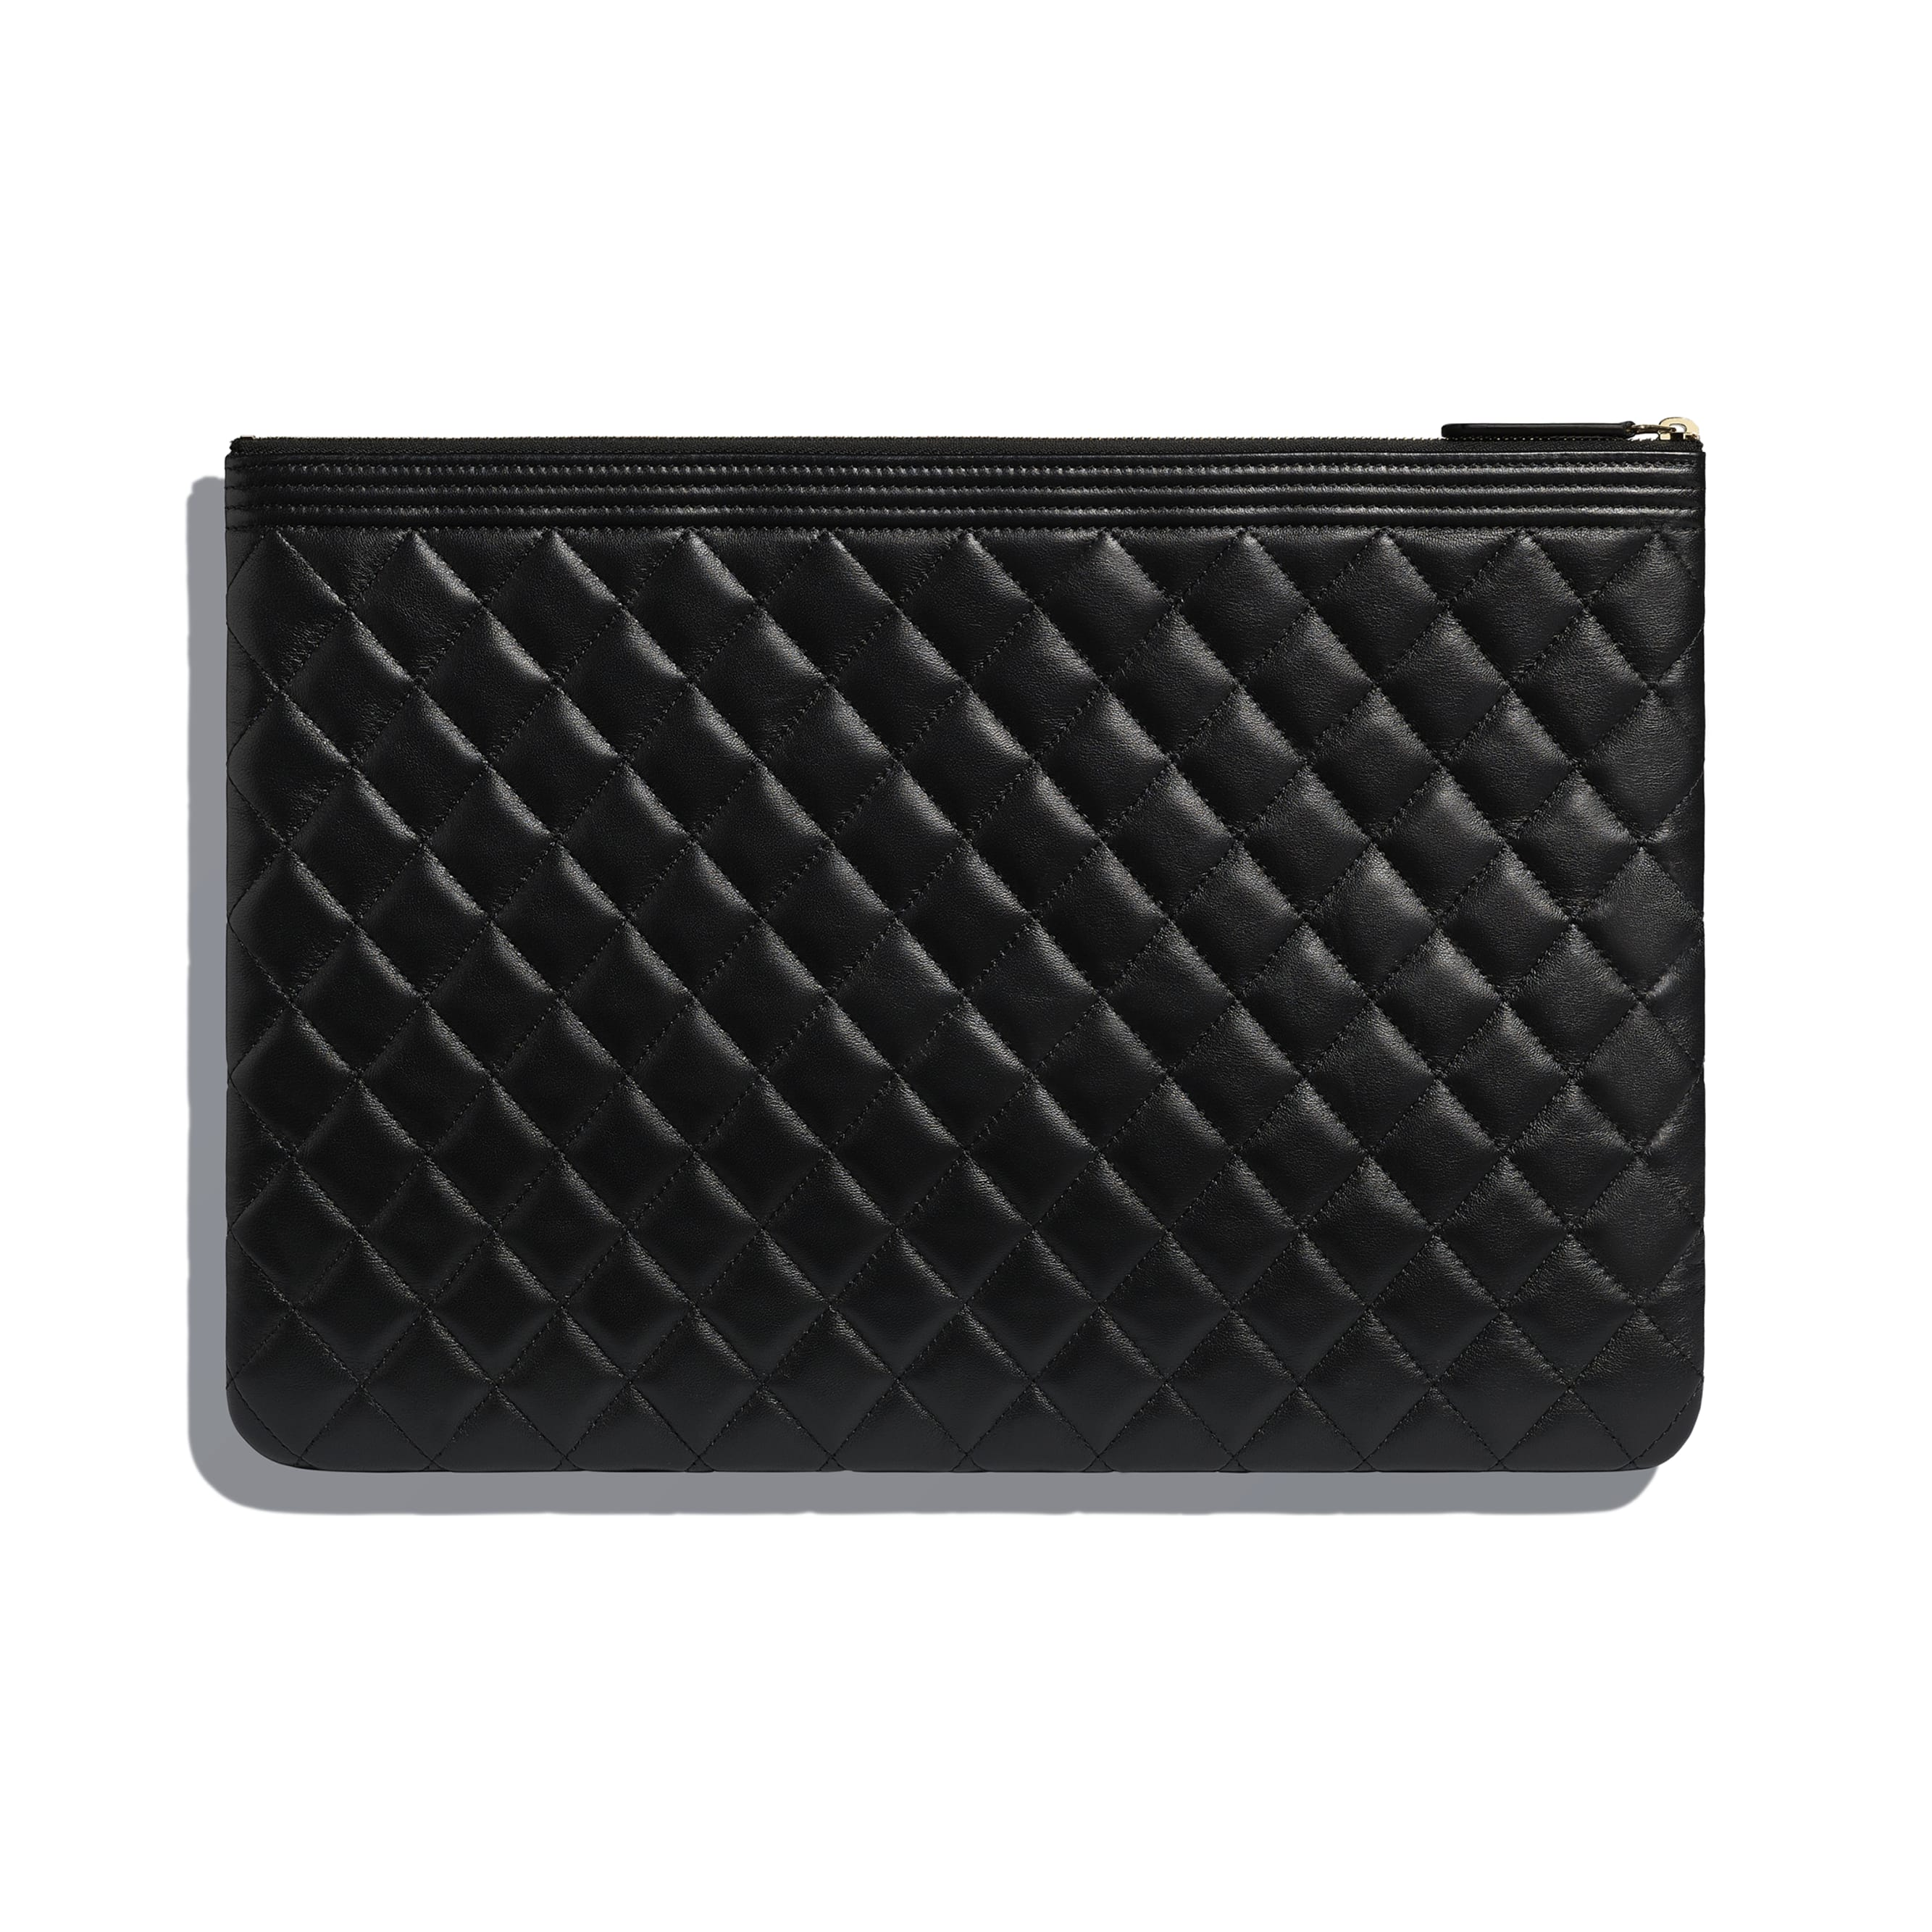 BOY CHANEL Large Pouch - Black - Lambskin - CHANEL - Alternative view - see standard sized version